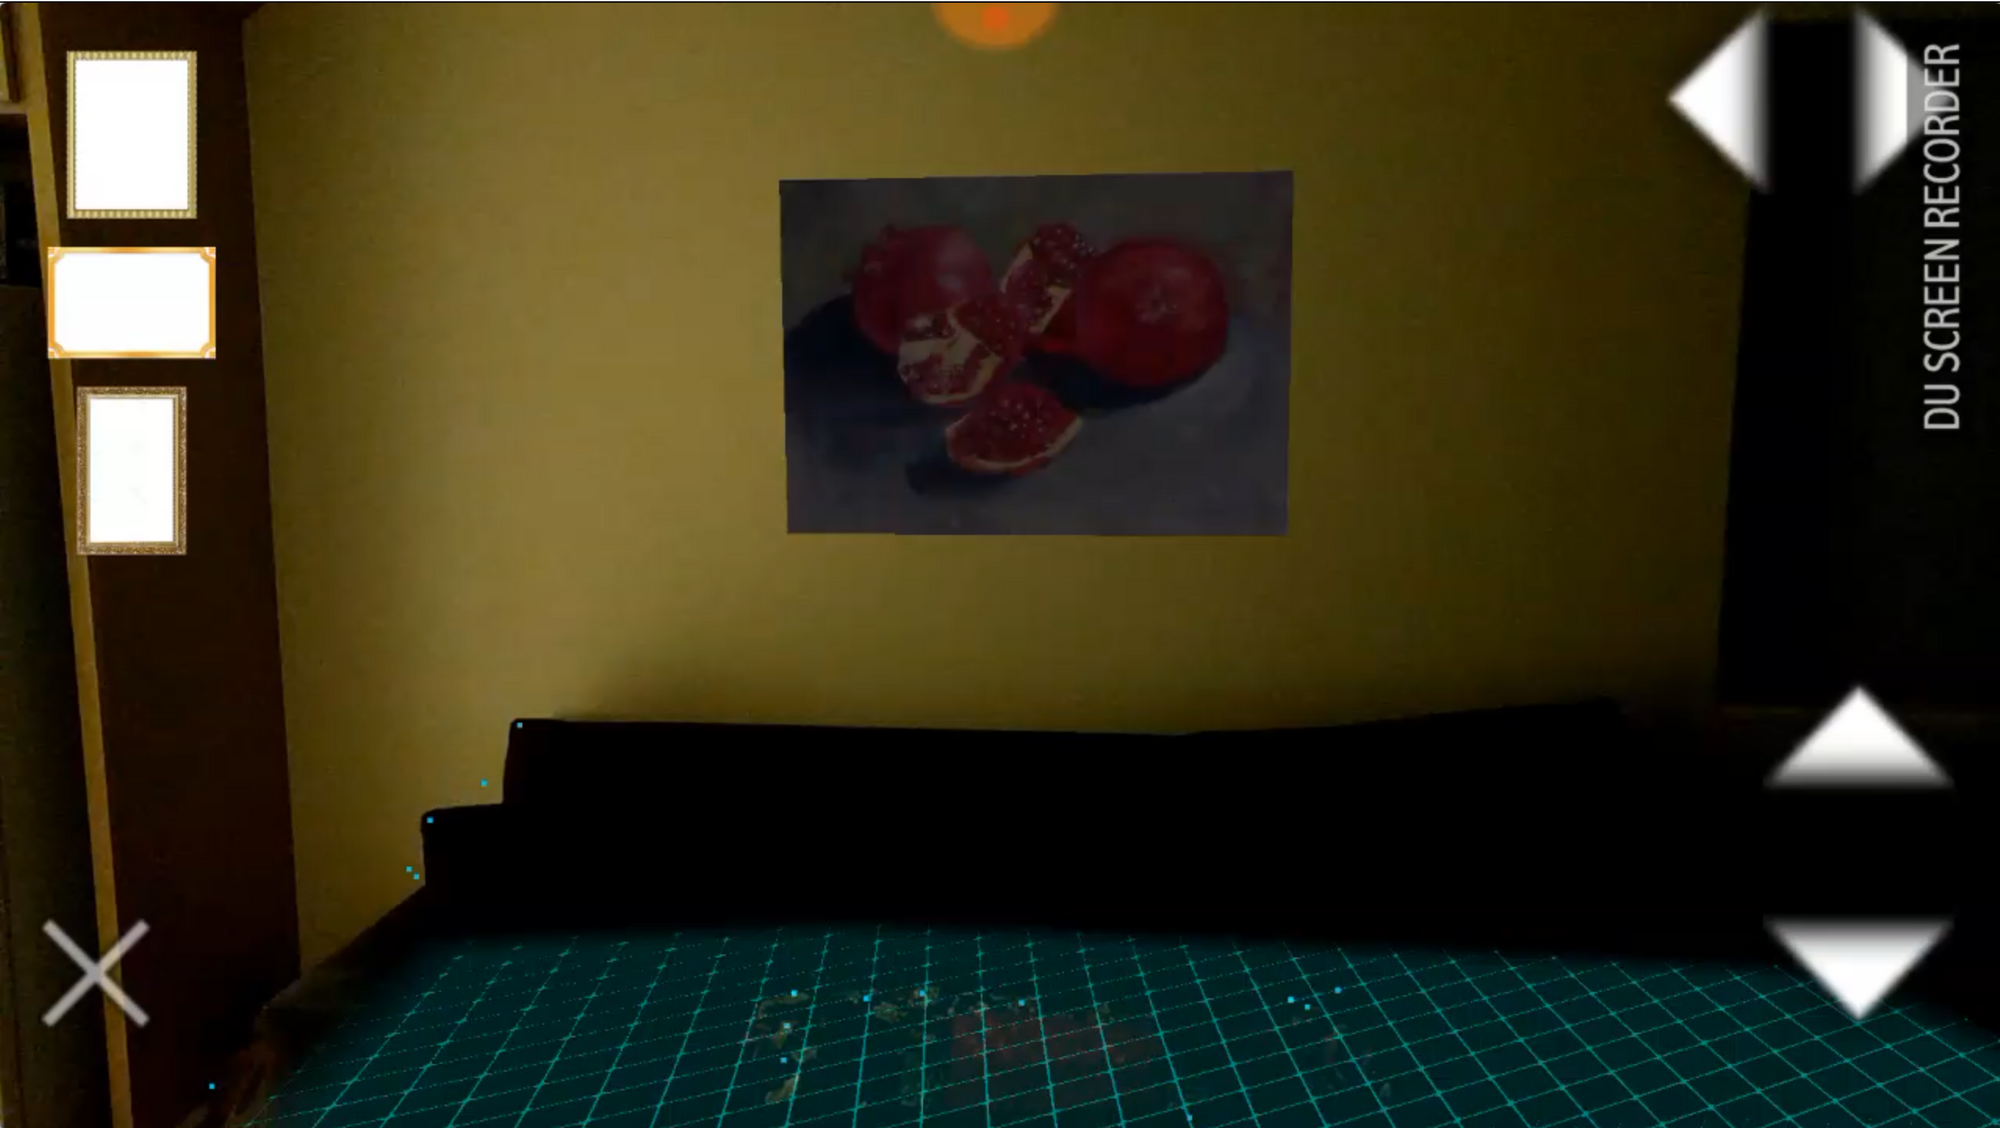 Example of Agumented reality in low lighting